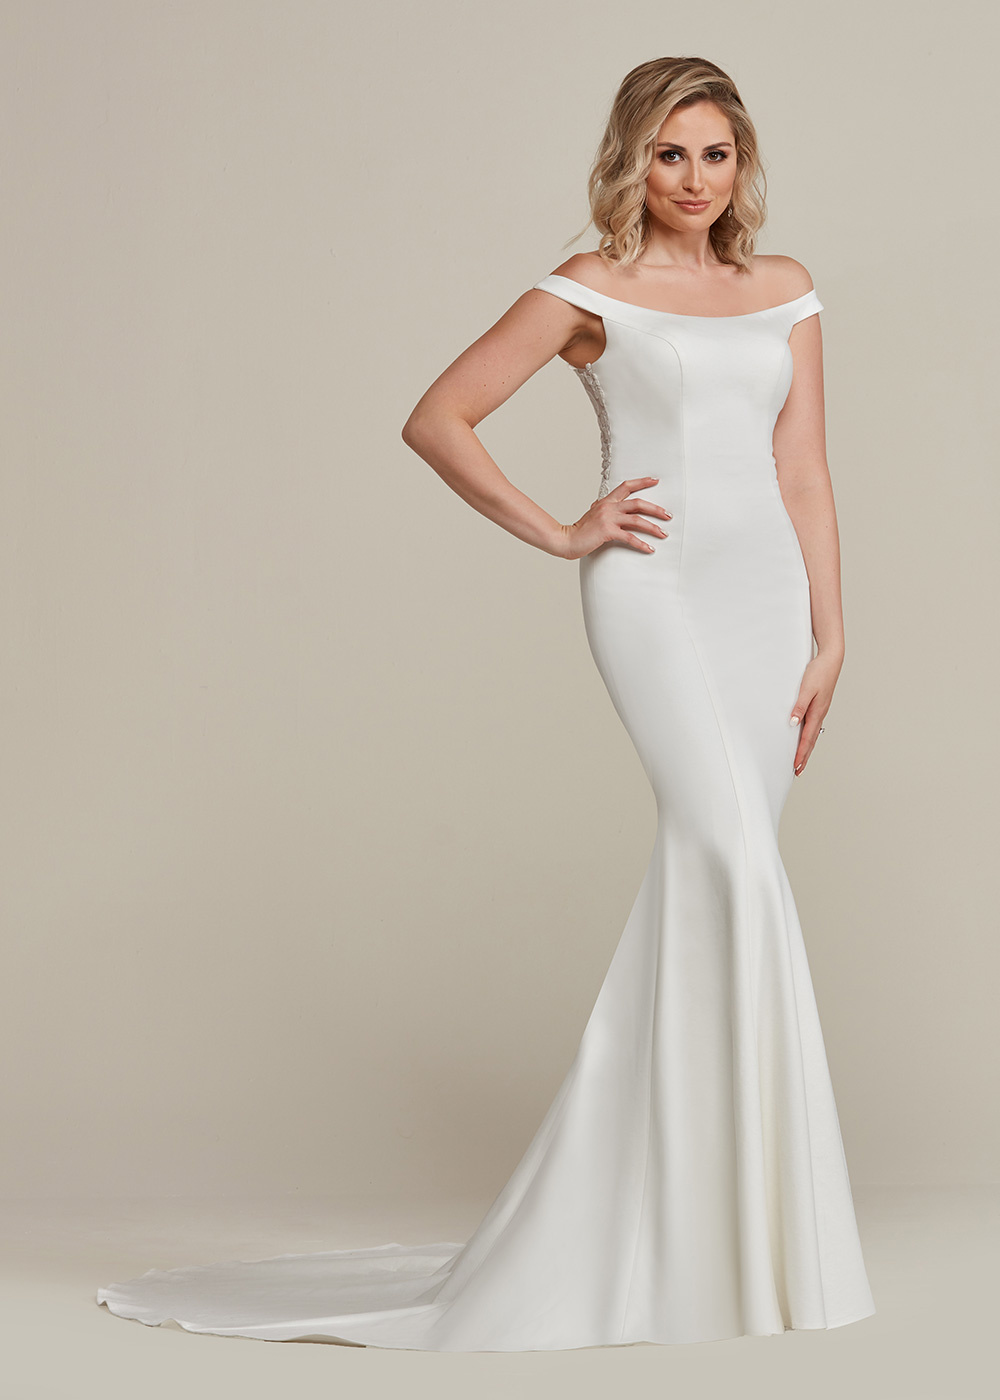 TH-Brynlee TH Wedding Dresses By Ashdon